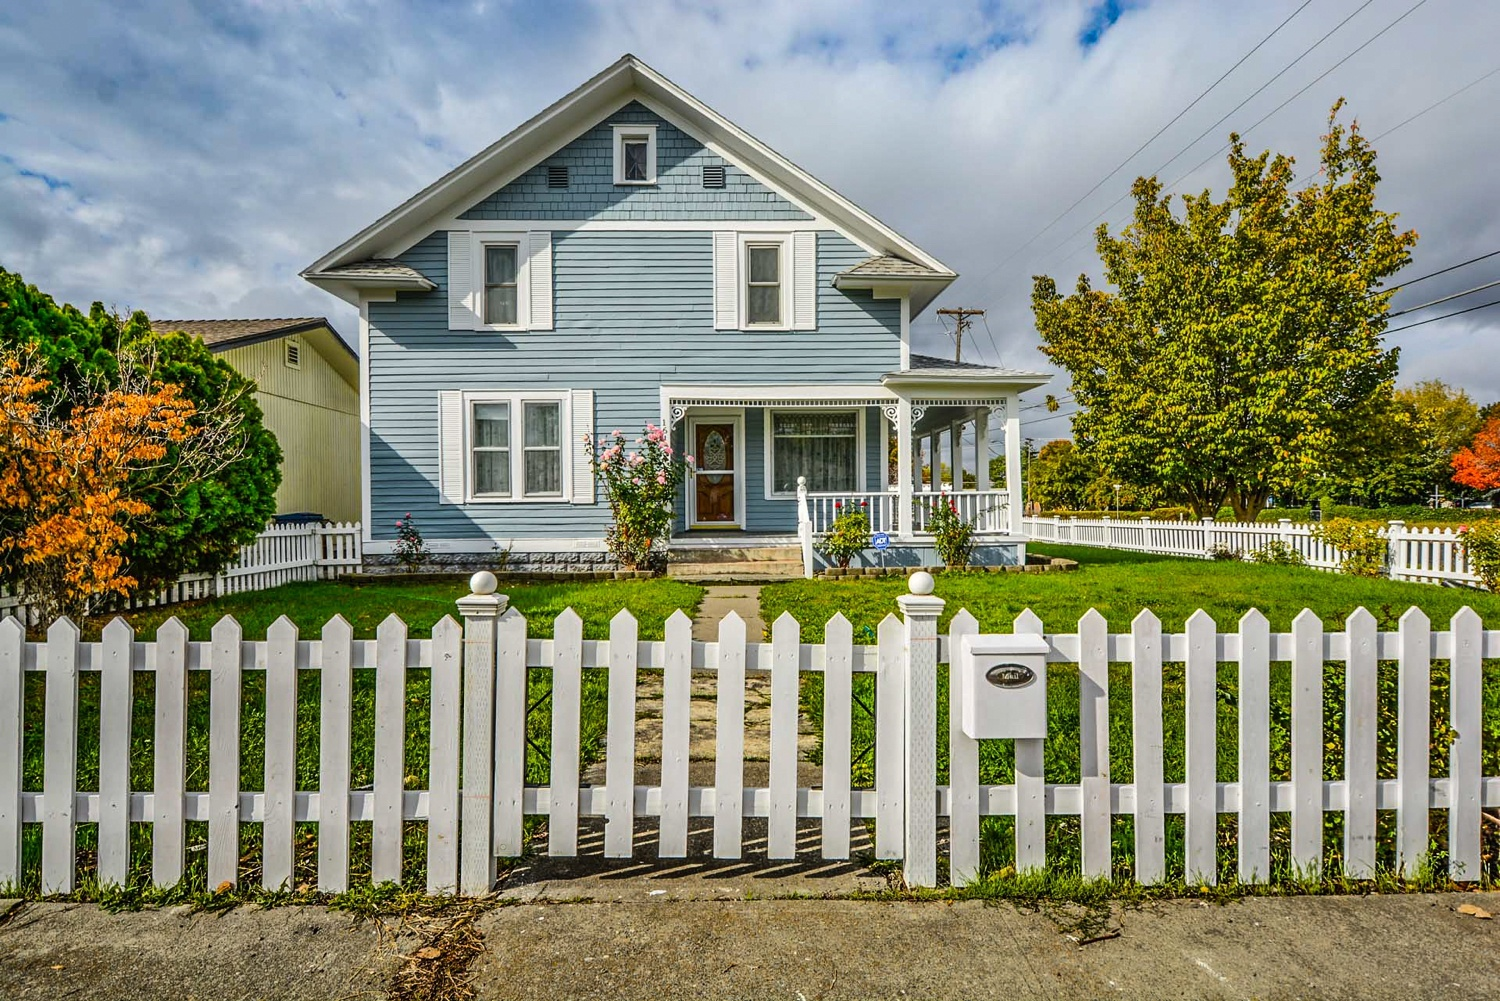 Buying a home out of state